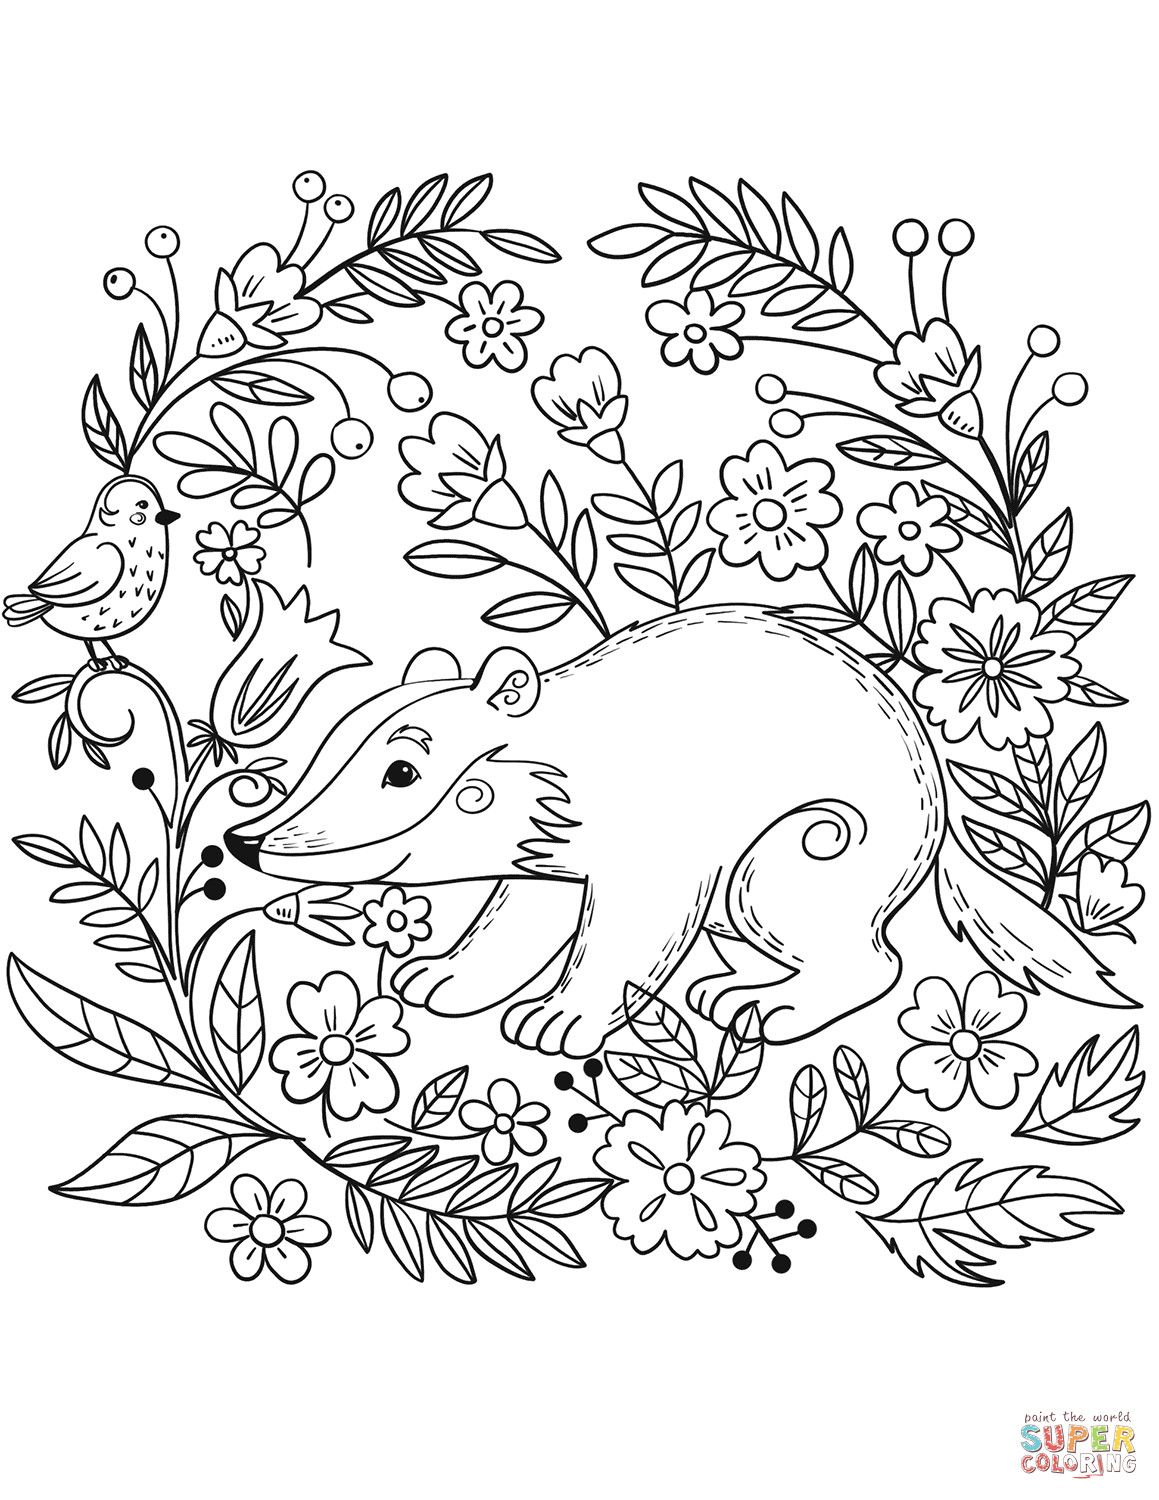 Badger Coloring Page With Forest Animals Coloring Pages Animal Coloring Pages Coloring Pictures Of Animals Coloring Pictures